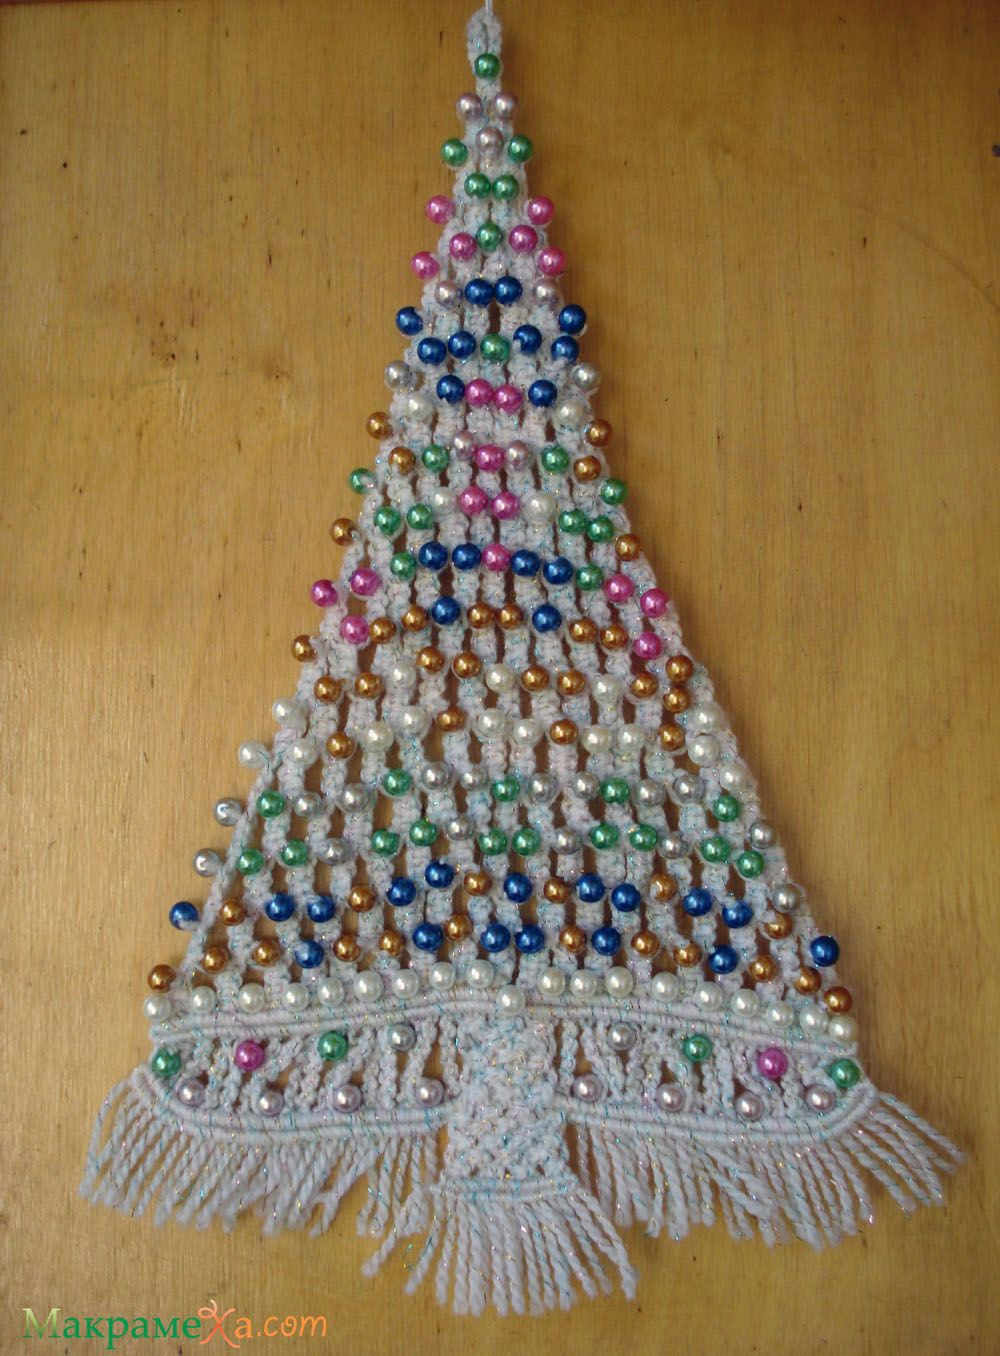 Hanging Christmas Decorations Wall.Macrame Christmas Tree Ornament Wall Hanger Step By Step